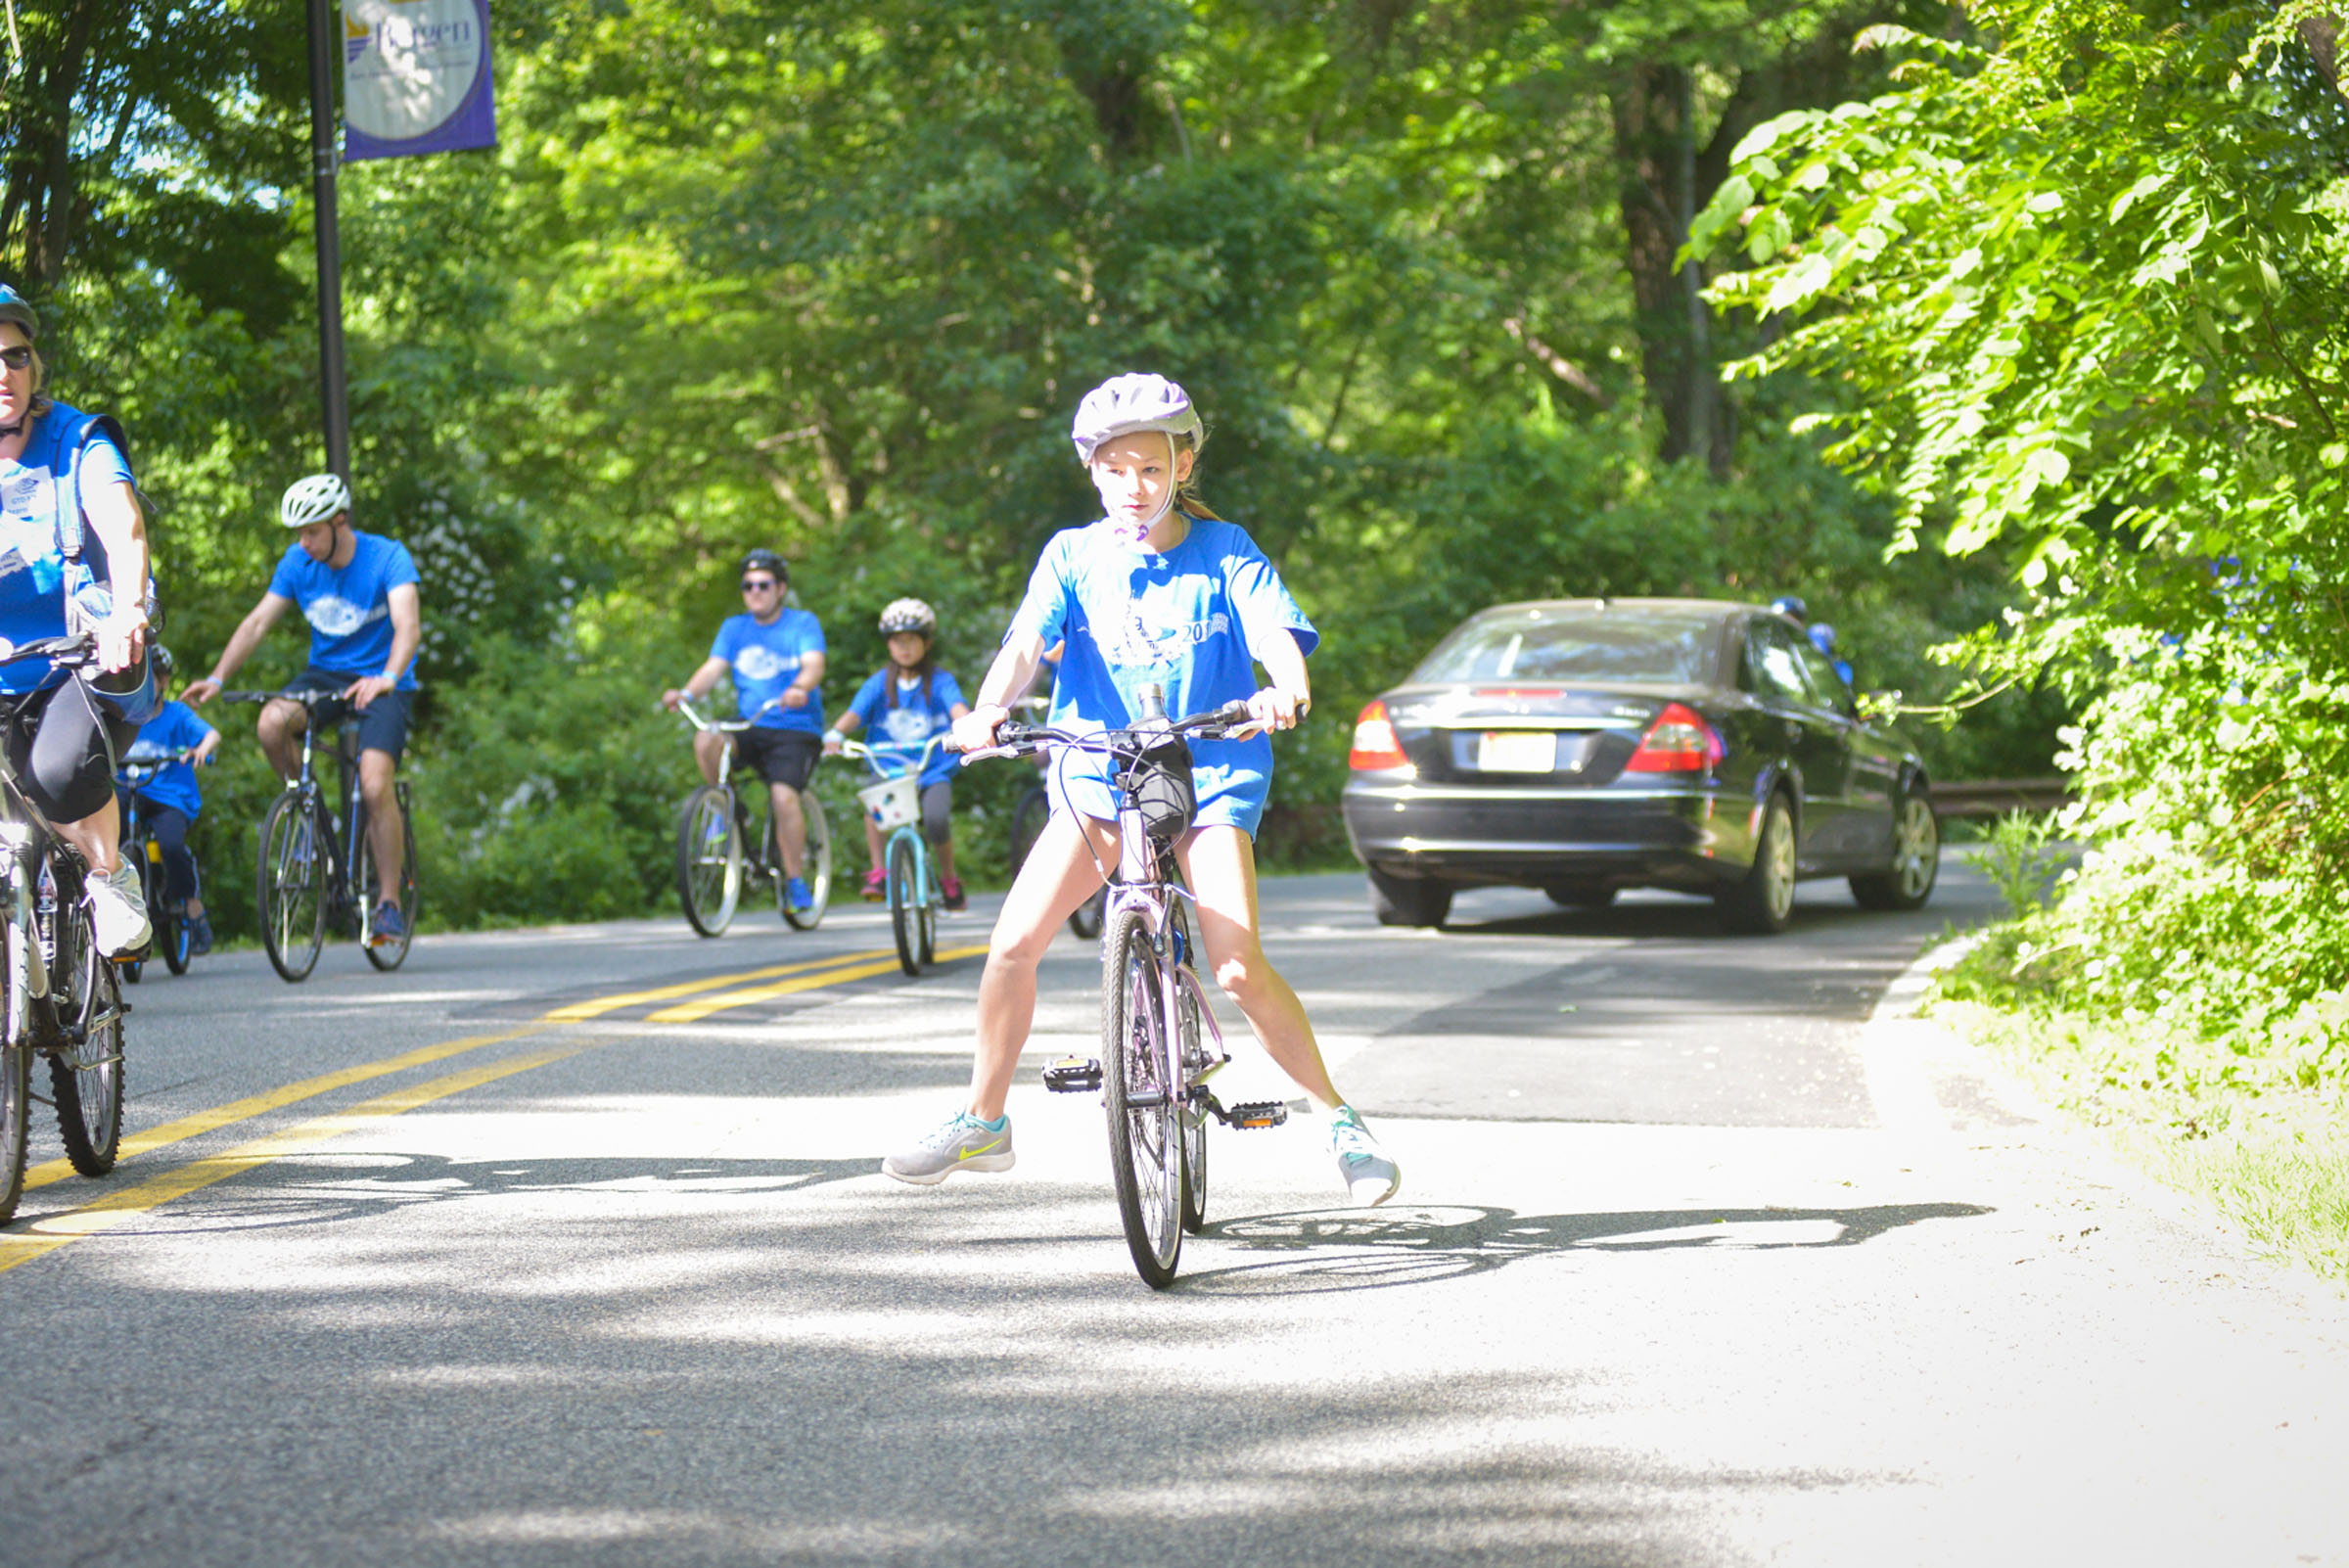 2017-06-04 GTD4A Charity Bike Ride - BCC - Paramus NJ-2055.jpg